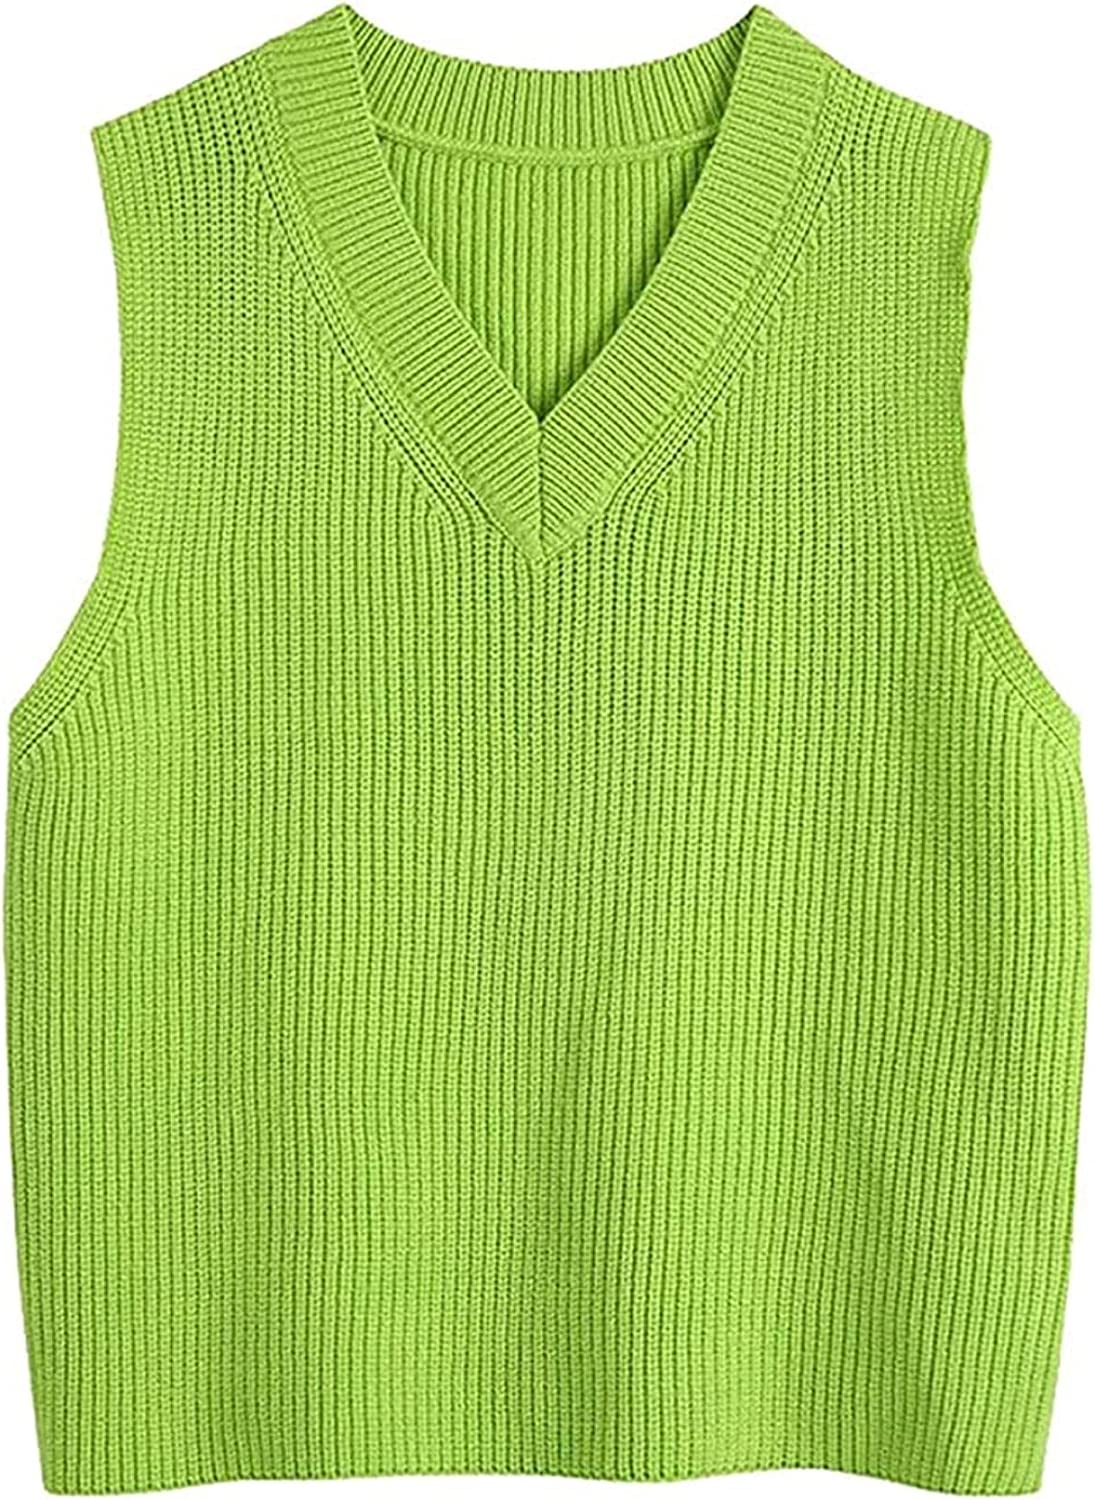 Women with Ribbed Trims Knitted Vest Sweater Vintage V Neck Sleeveless Waistcoat Chic Tops